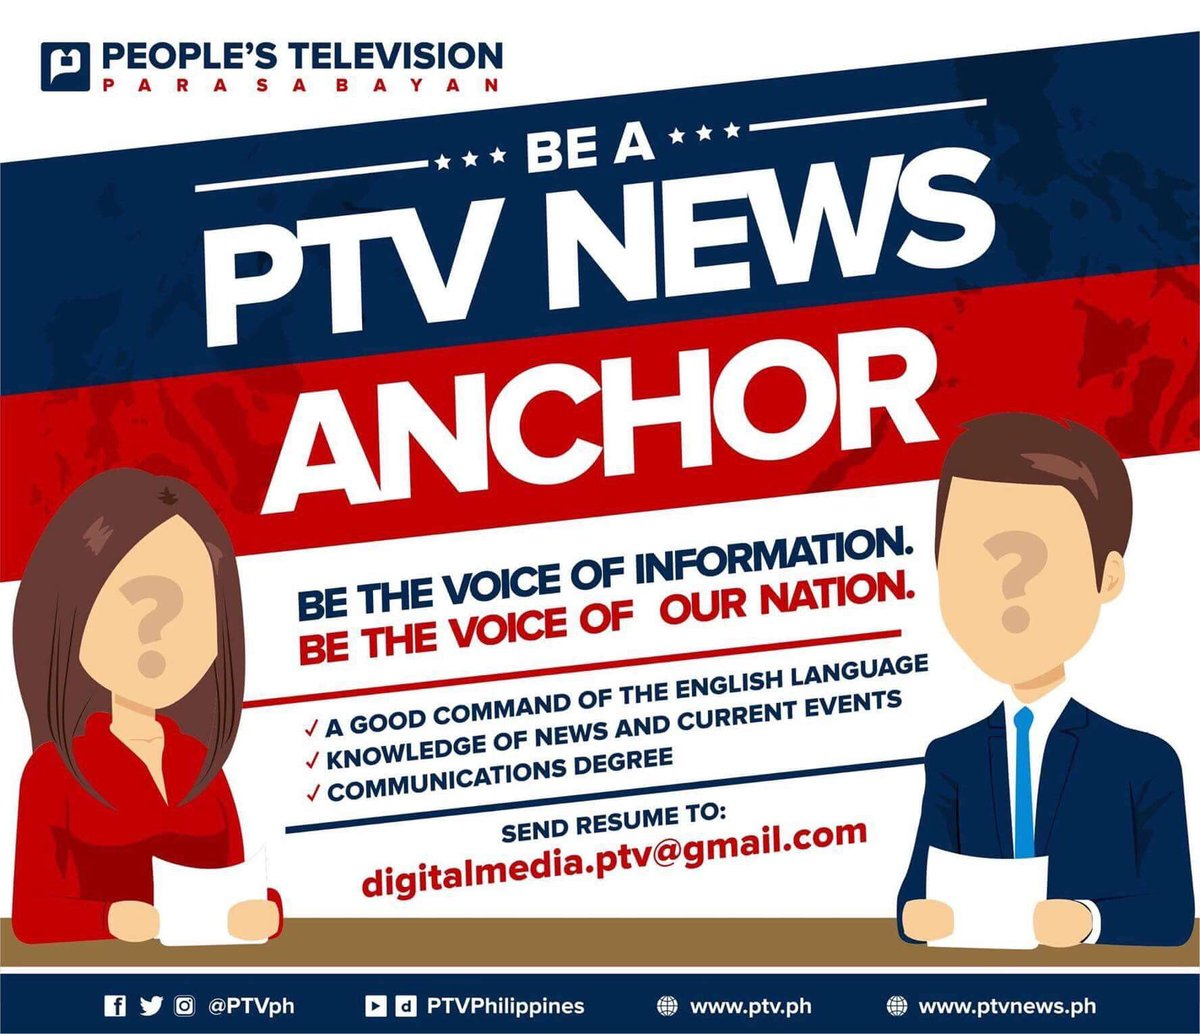 Join us: be the next ptv news anchor. send your resume to ...